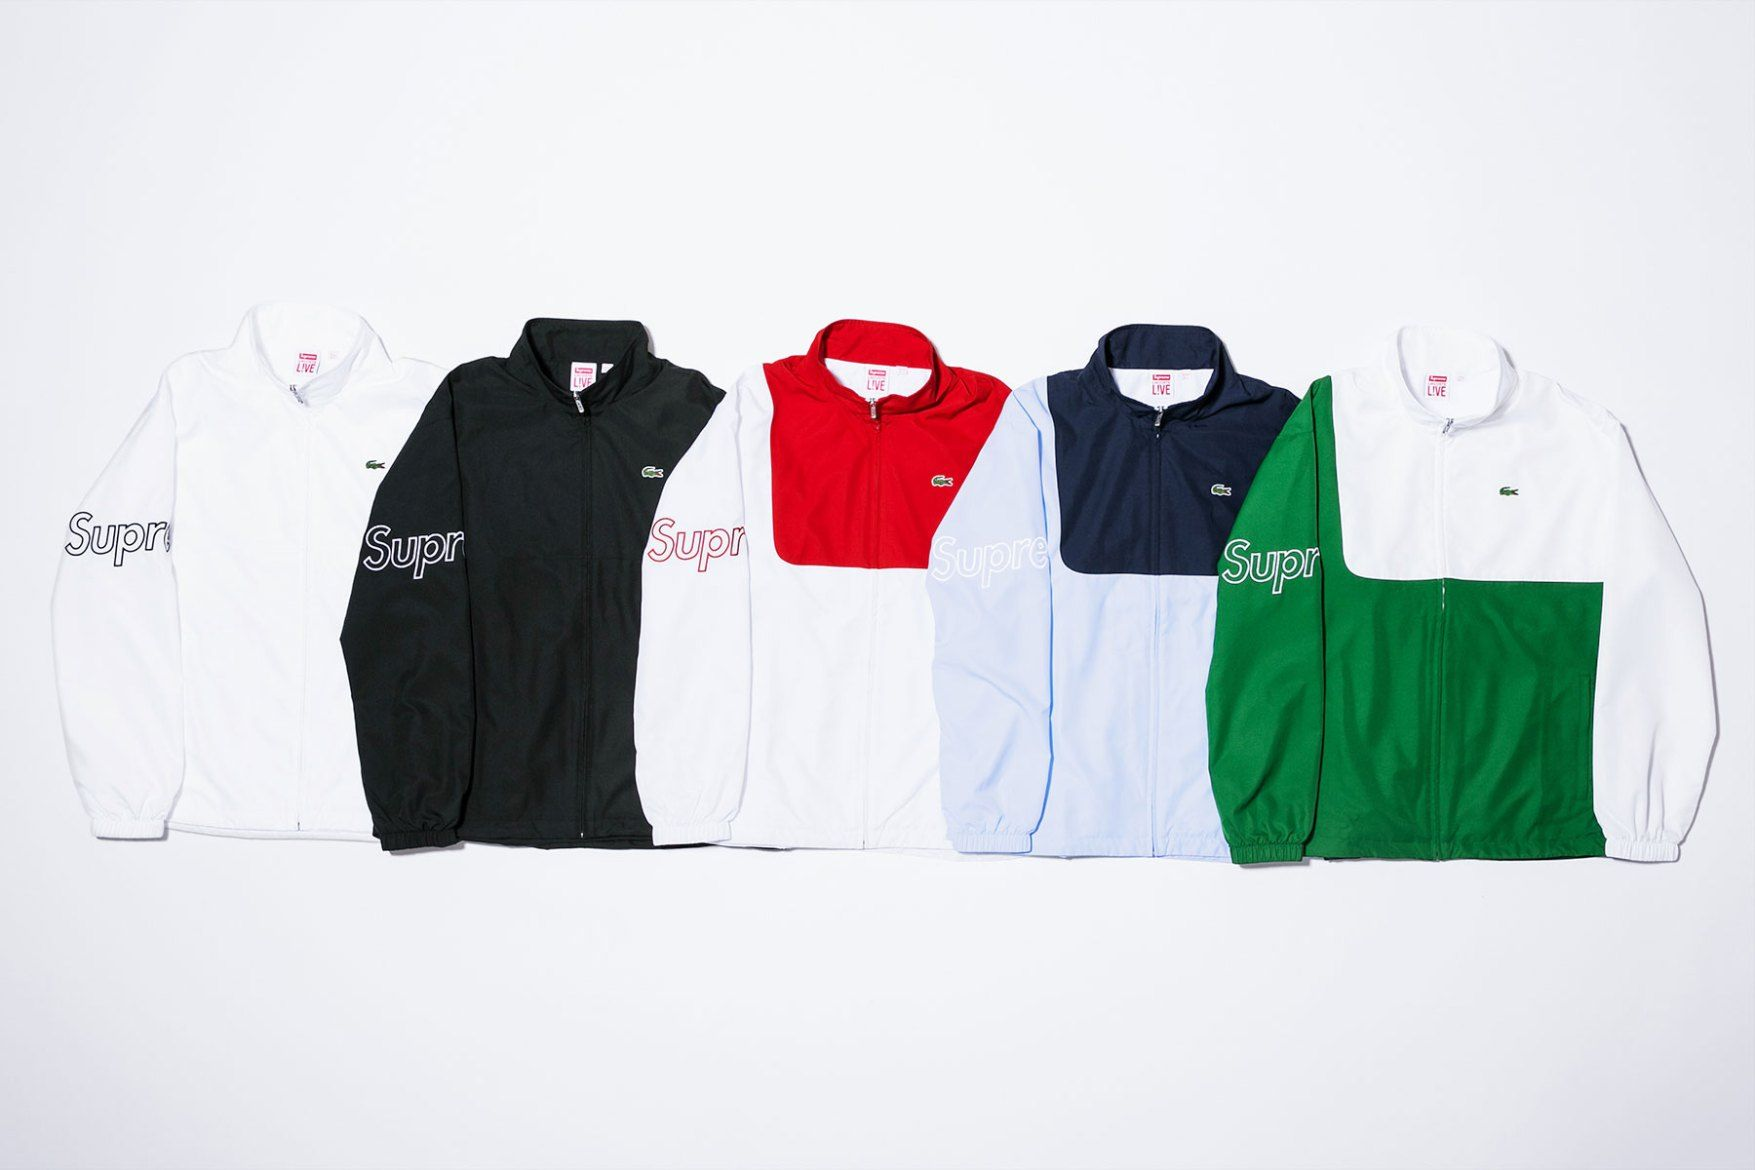 8a240146bbd9 Lacoste x Supreme 2017 Spring Summer Collection